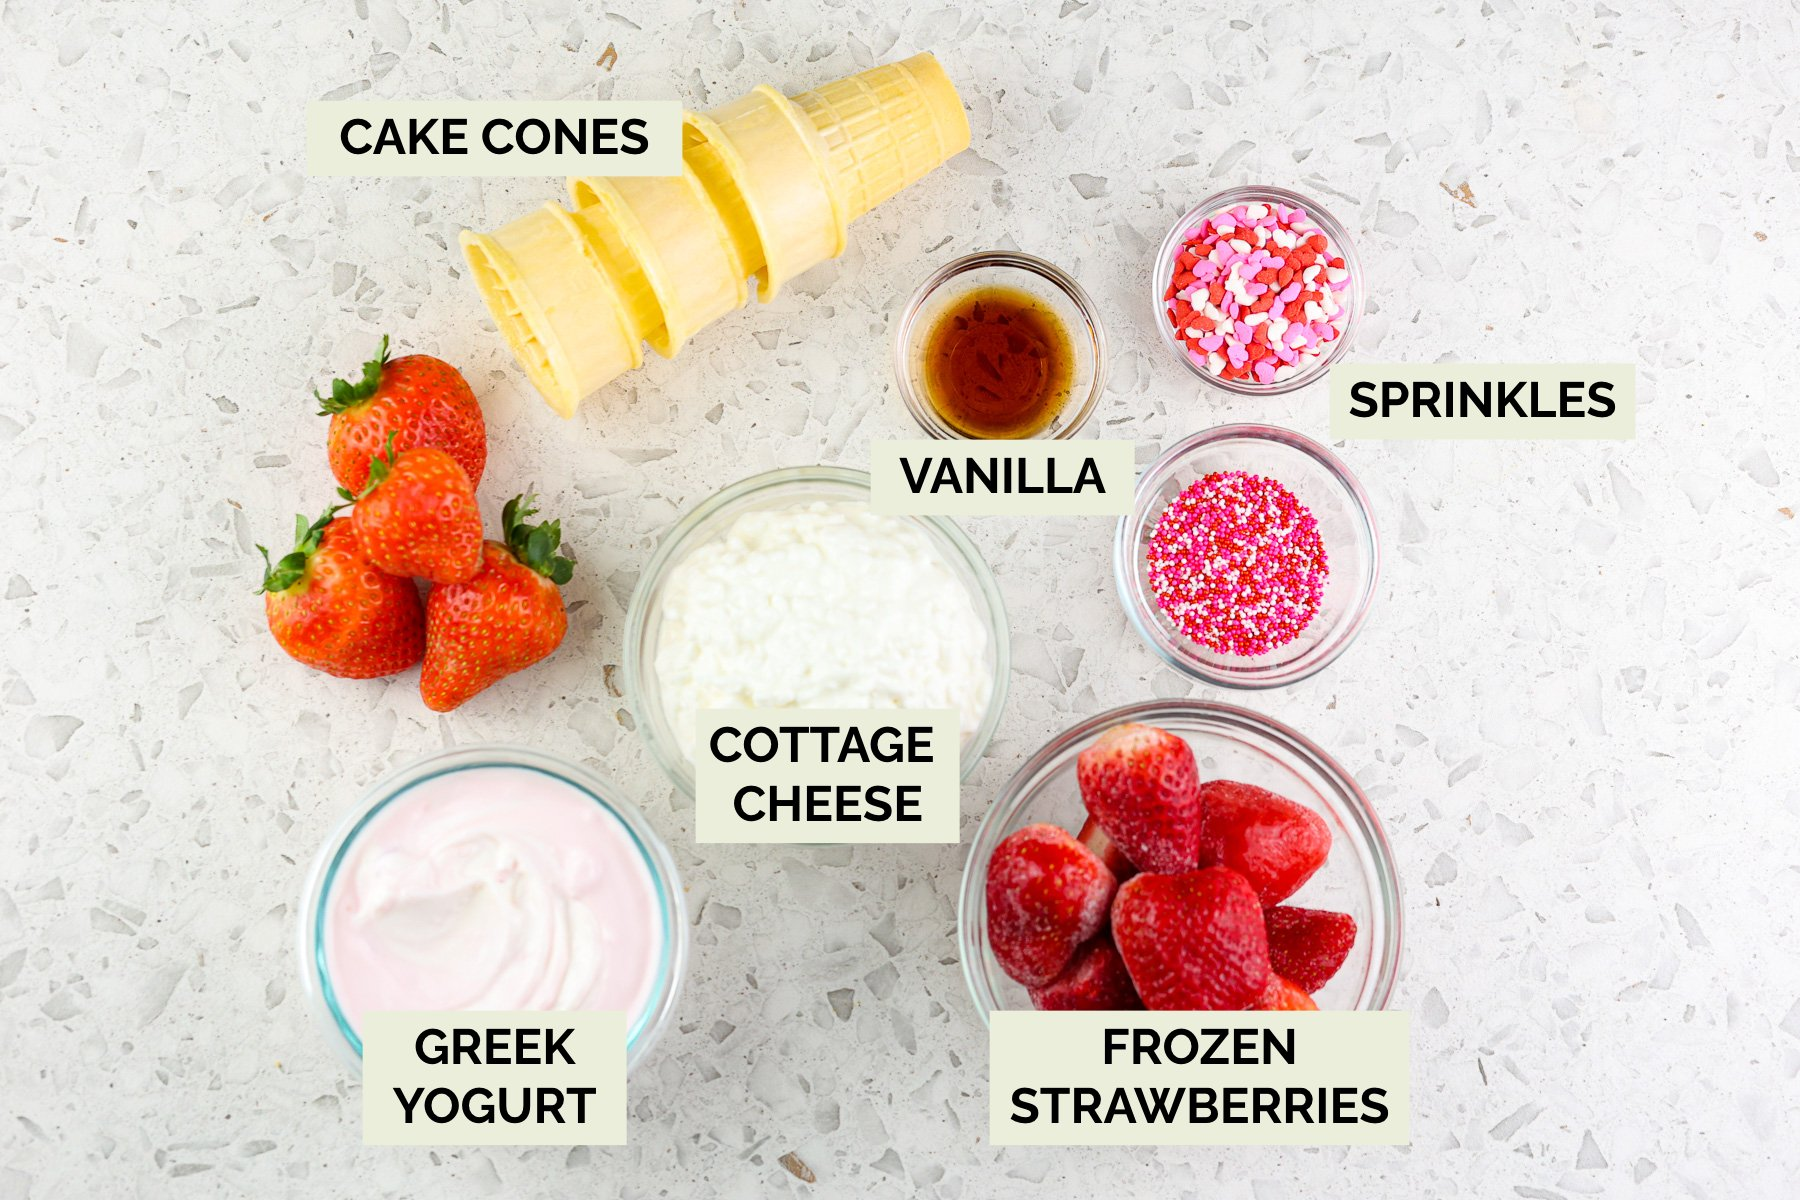 White backdrop with glass bowls on top filled with cottage cheese, berries, sprinkles and yellow cake cones .